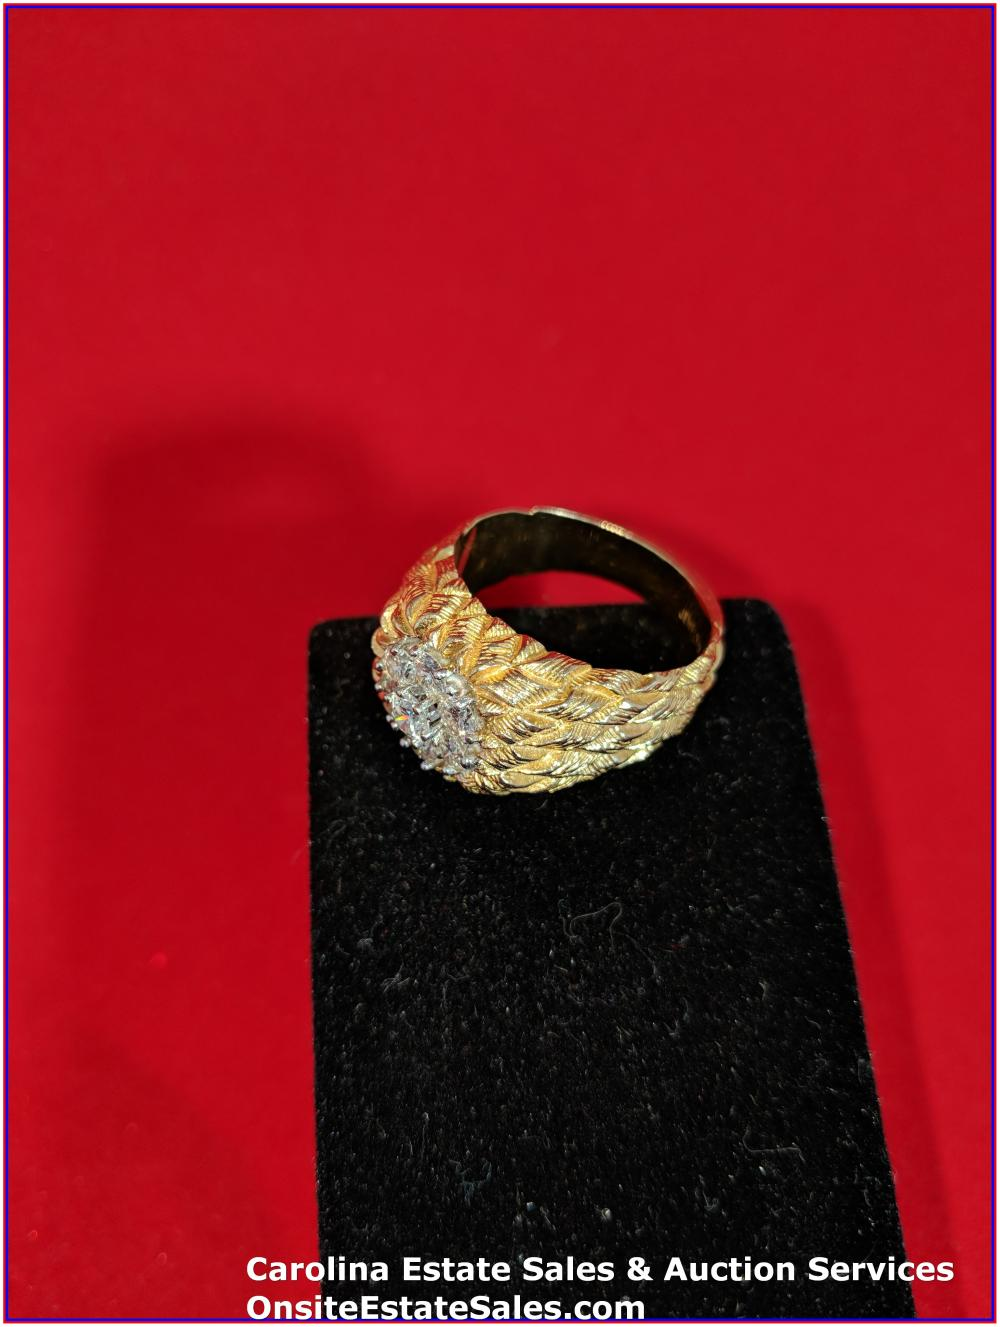 14K Gem Ring Gold 14 Grams Total Weight Includes Stone